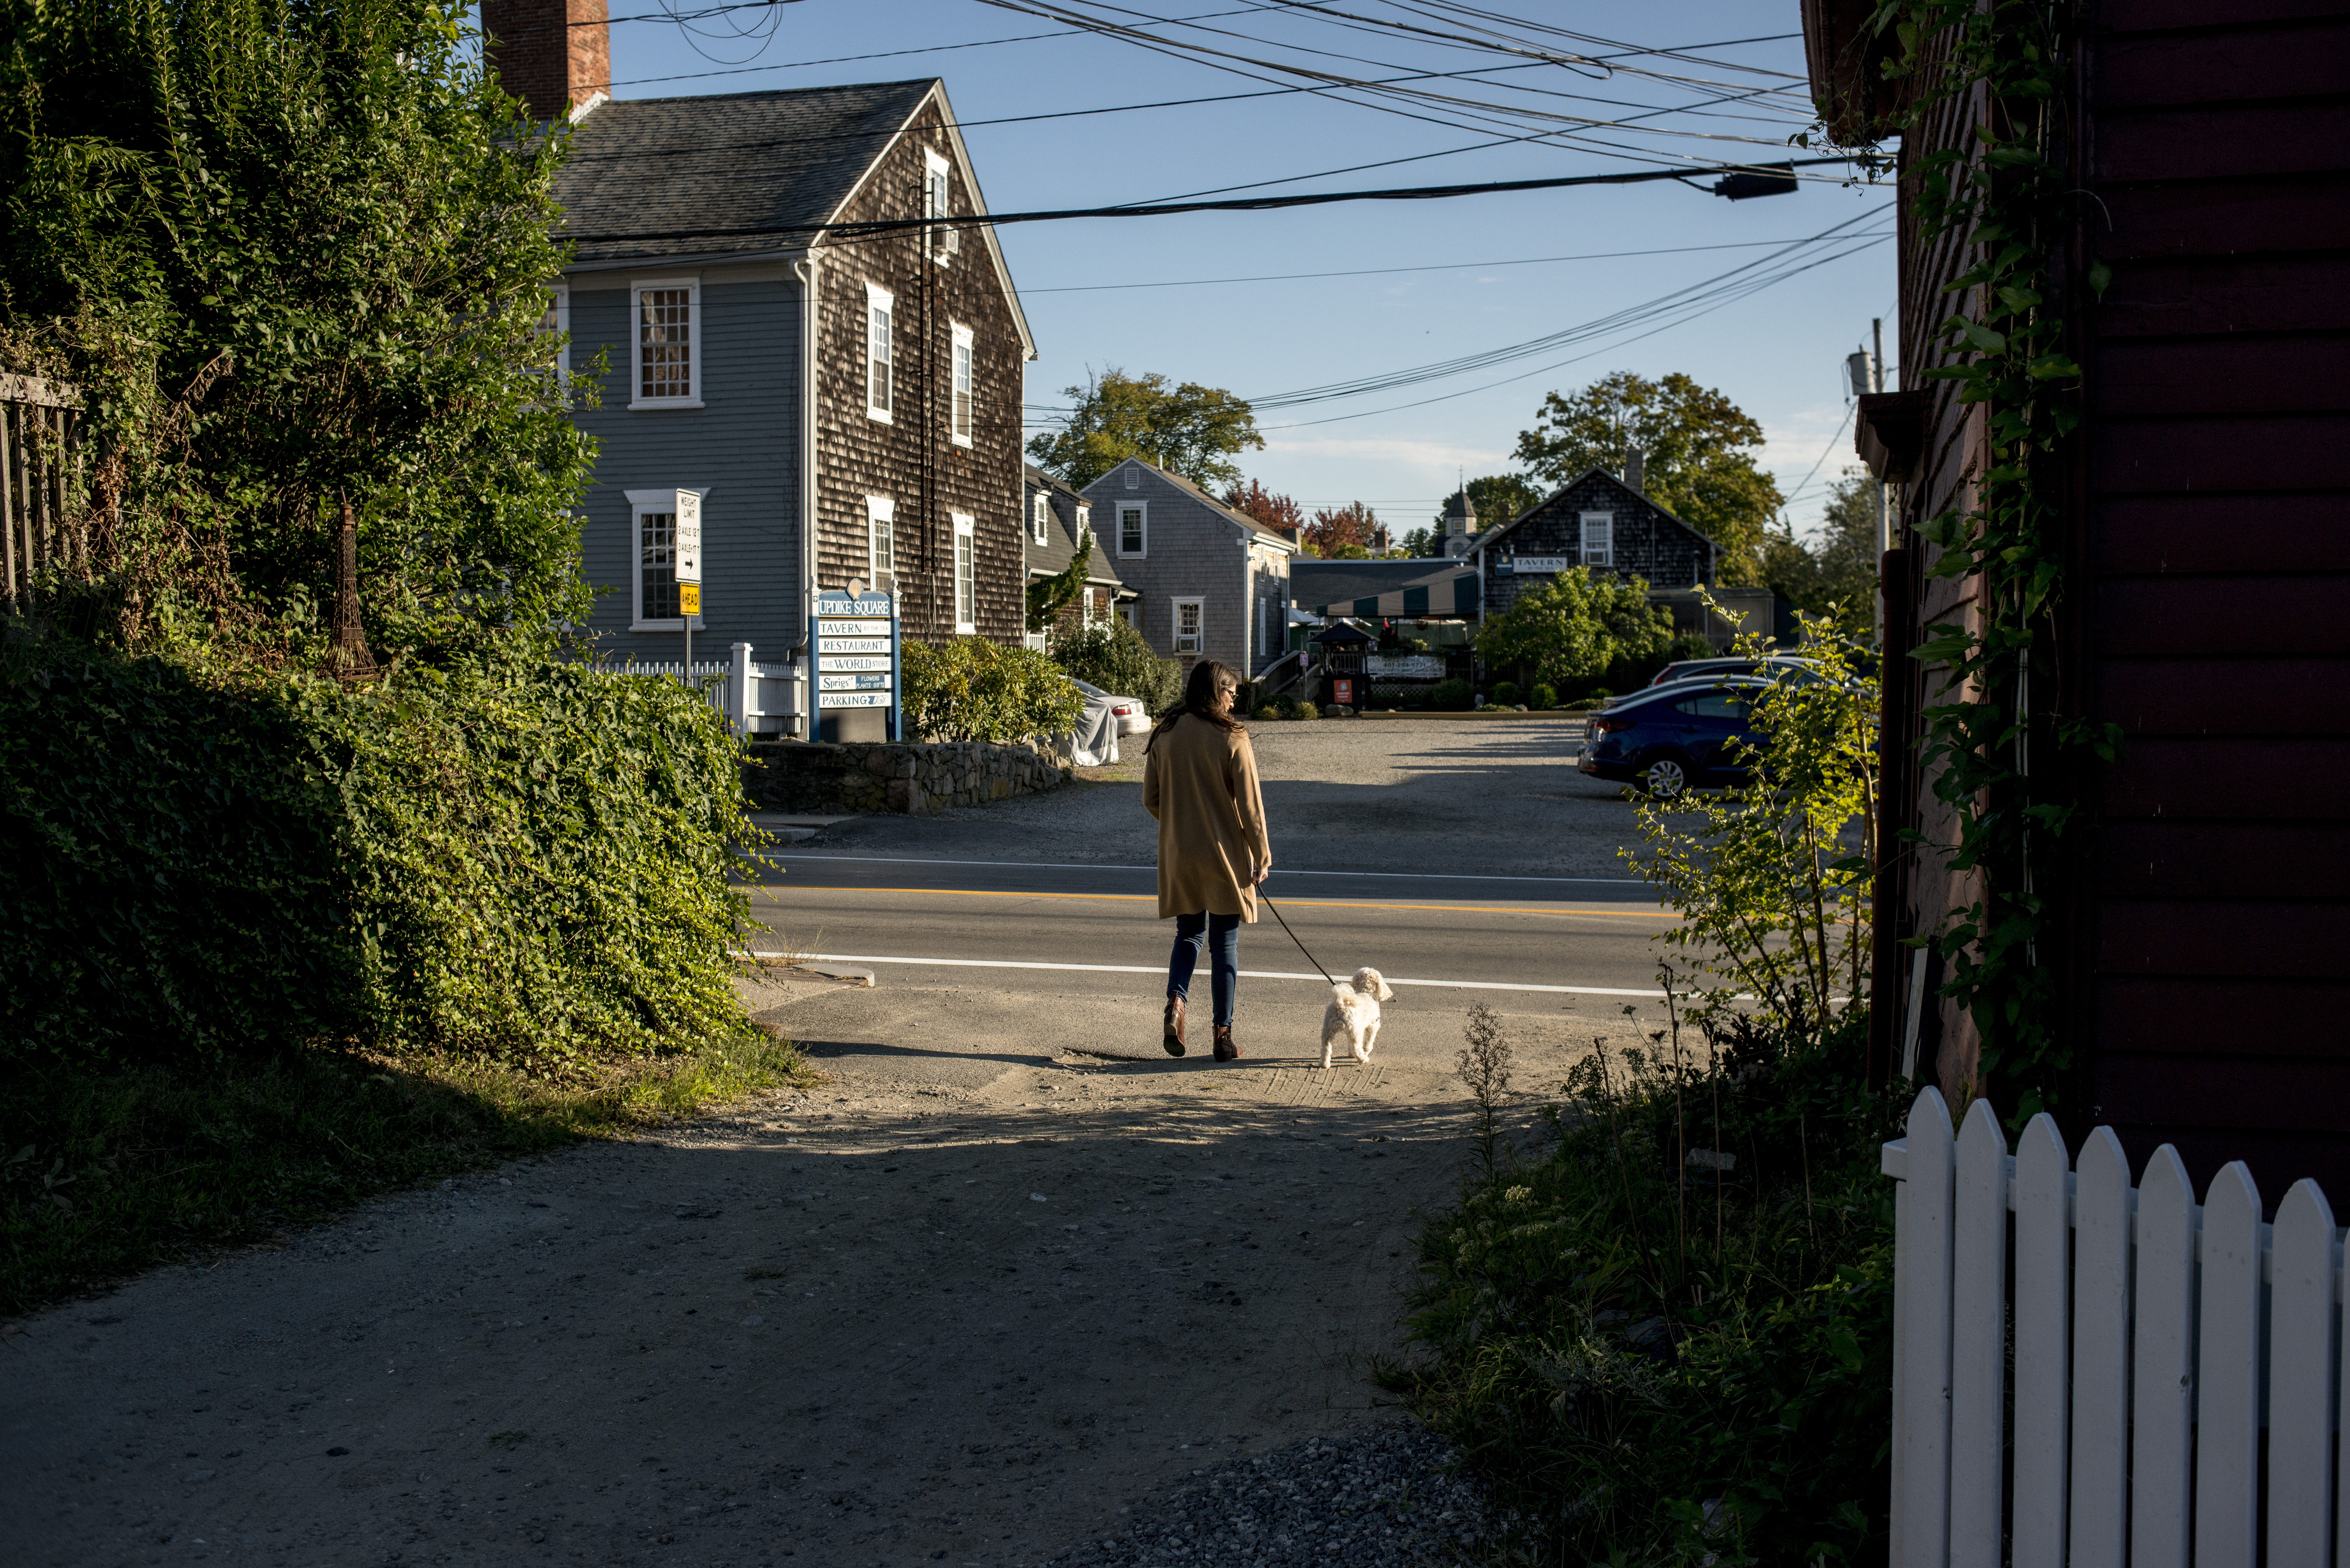 Tori Perrotti walks her dog in downtown Wickford, Rhode Island, on Sunday, Sept. 20, 2020. Perrotti says she was the subject of an attempted internet shaming by David Leavitt after she refused to sell him an electronic toothbrush at Target, mislabeled for a fraction of the selling price. The majority of the online community took Perrotti's side, raising over $30,000 through a GoFundMe page.